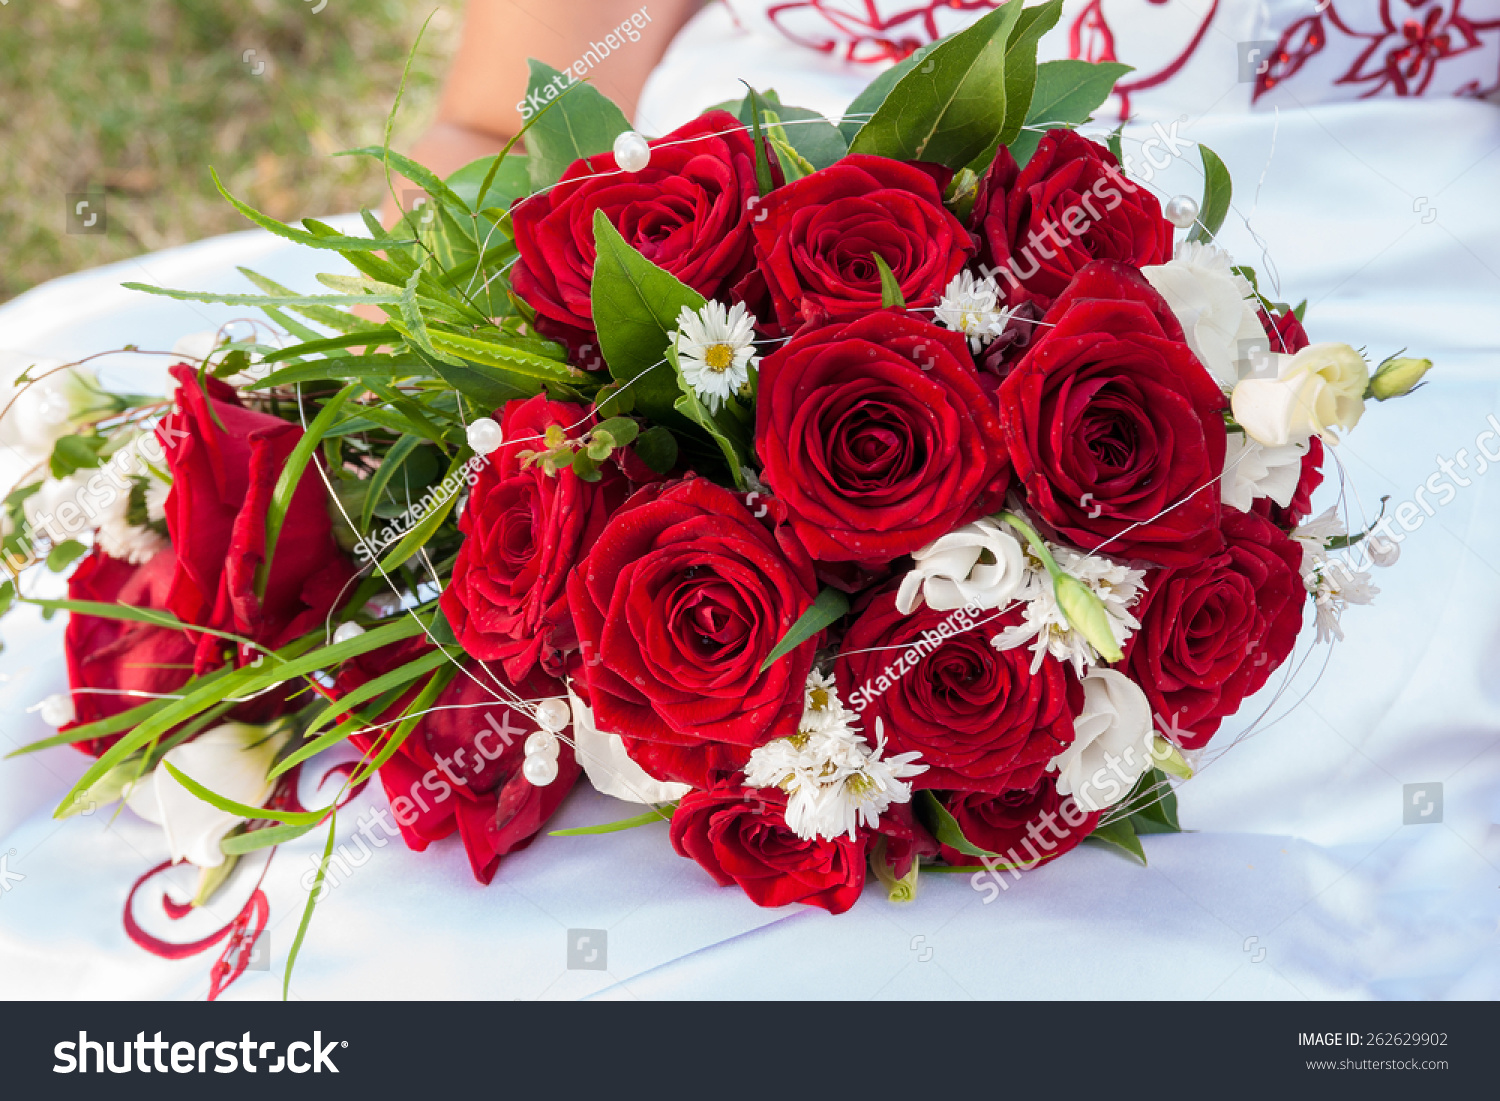 Bridal bouquet of red roses and white flowers ez canvas id 262629902 izmirmasajfo